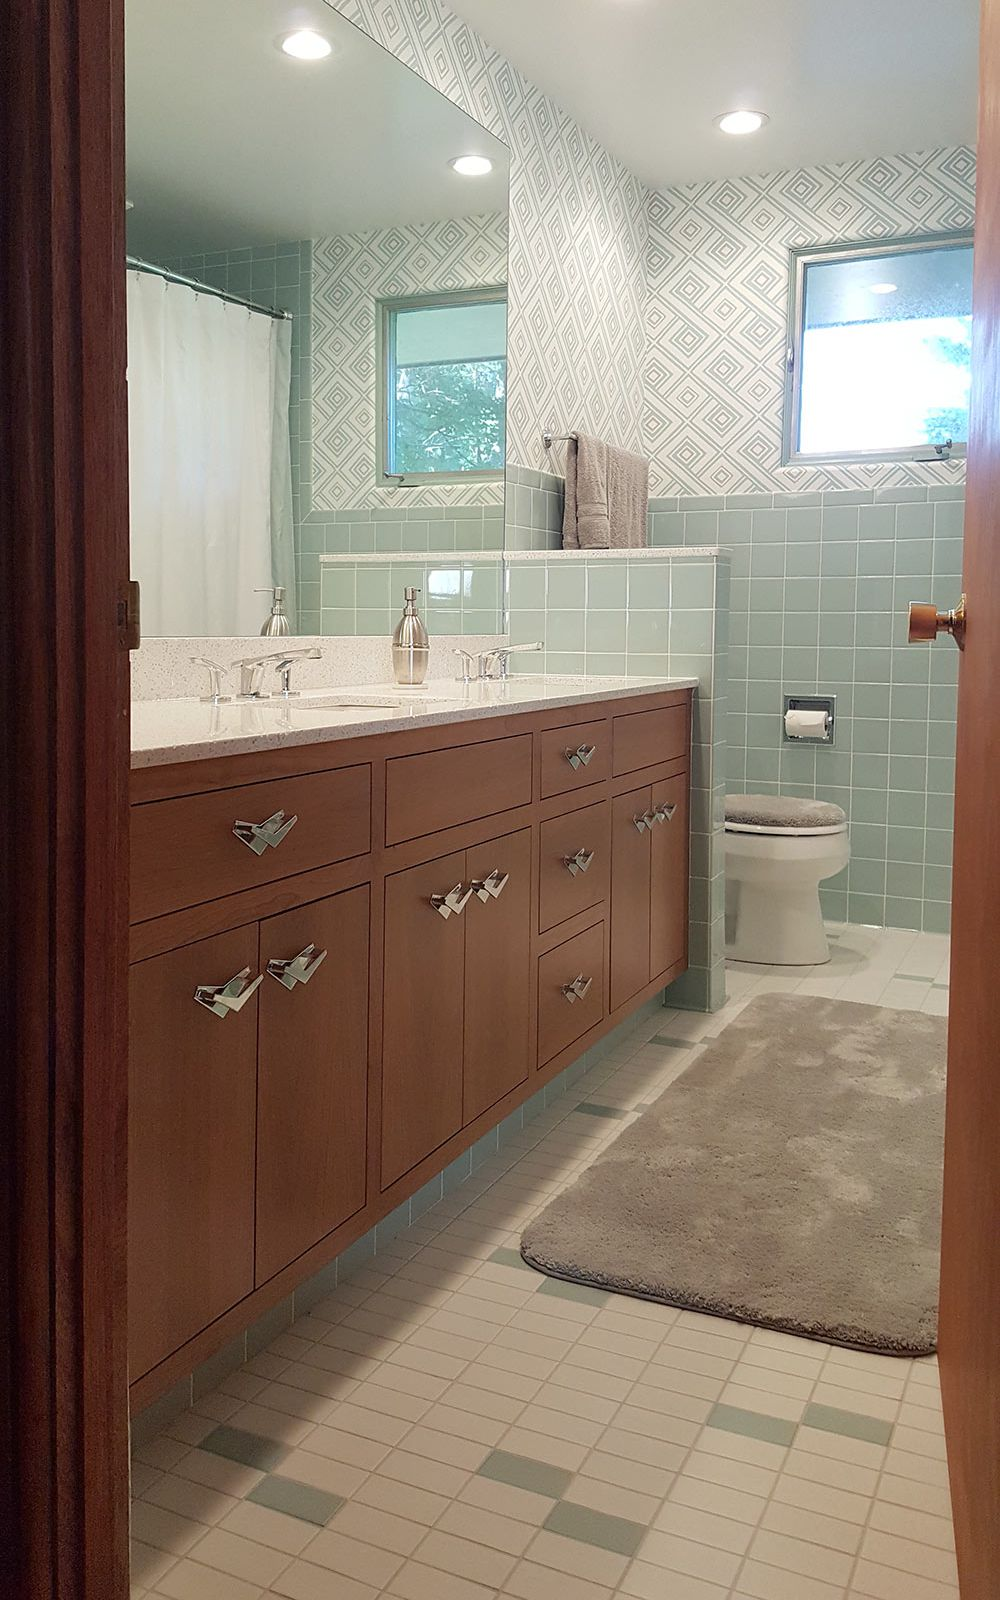 midcentury bathroom - Midcentury Bathroom 2016